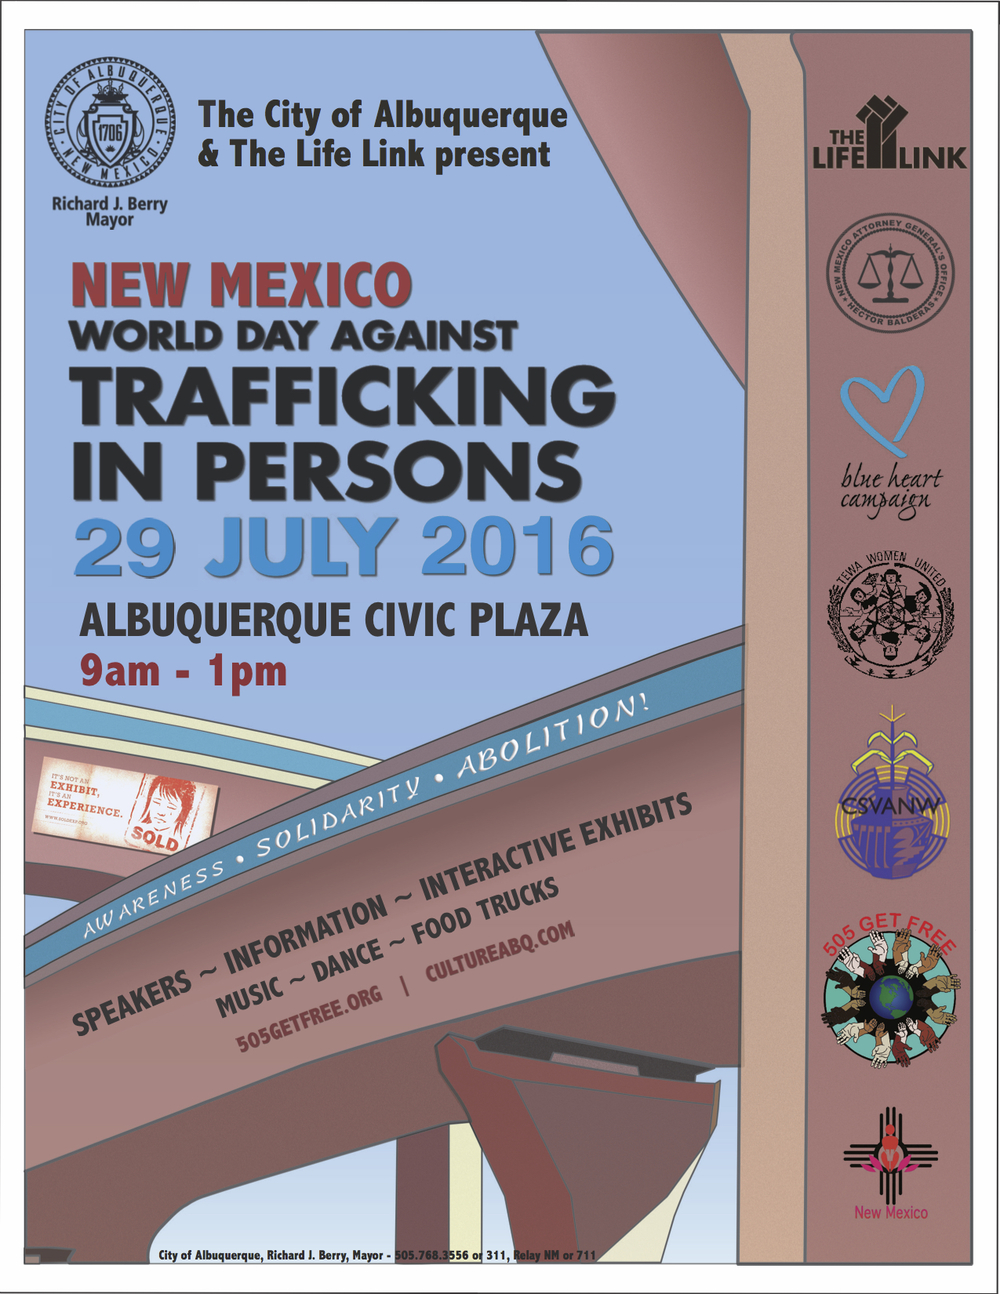 """The City of Albuquerque and The Life Link are proud to announce the New Mexico World Day Against Trafficking in Persons, to be held at Albuquerque Civic Plaza on July 29, 2016, from 9am to 1pm. Joining forces with the New Mexico Office of the Attorney General, the Coalition to STOP Violence against Native Women, Tewa Women United, One Billion Rising, and others, we are devoting the day to raising awareness about Human Trafficking, educating the community about available resources, showing solidarity with victims, and campaigning to abolish modern day slavery in New Mexico and around the world. Speakers for the event include Albuquerque Mayor Richard J. Berry,New Mexico Attorney General Hector Balderas, and many others. Entertainment includes live music and dance, food trucks, a performance by Graviel De La Plaga, and more. We are also proud to announce the participation of SOLD: The Human Trafficking Experience. SOLD is a """"multi-sensory experience that will educate you on the shocking reality of human trafficking, both locally and globally. Participants will be immersed into the lives of victims in nine different parts of the world. SOLD challenges participants to respond to human trafficking with justice, mercy, and humility"""". Please mark your calendars and join us on Albuquerque Civic Plaza on July 29th! Print copies of the flyer and share with friends and colleagues! End modern day slavery now!"""